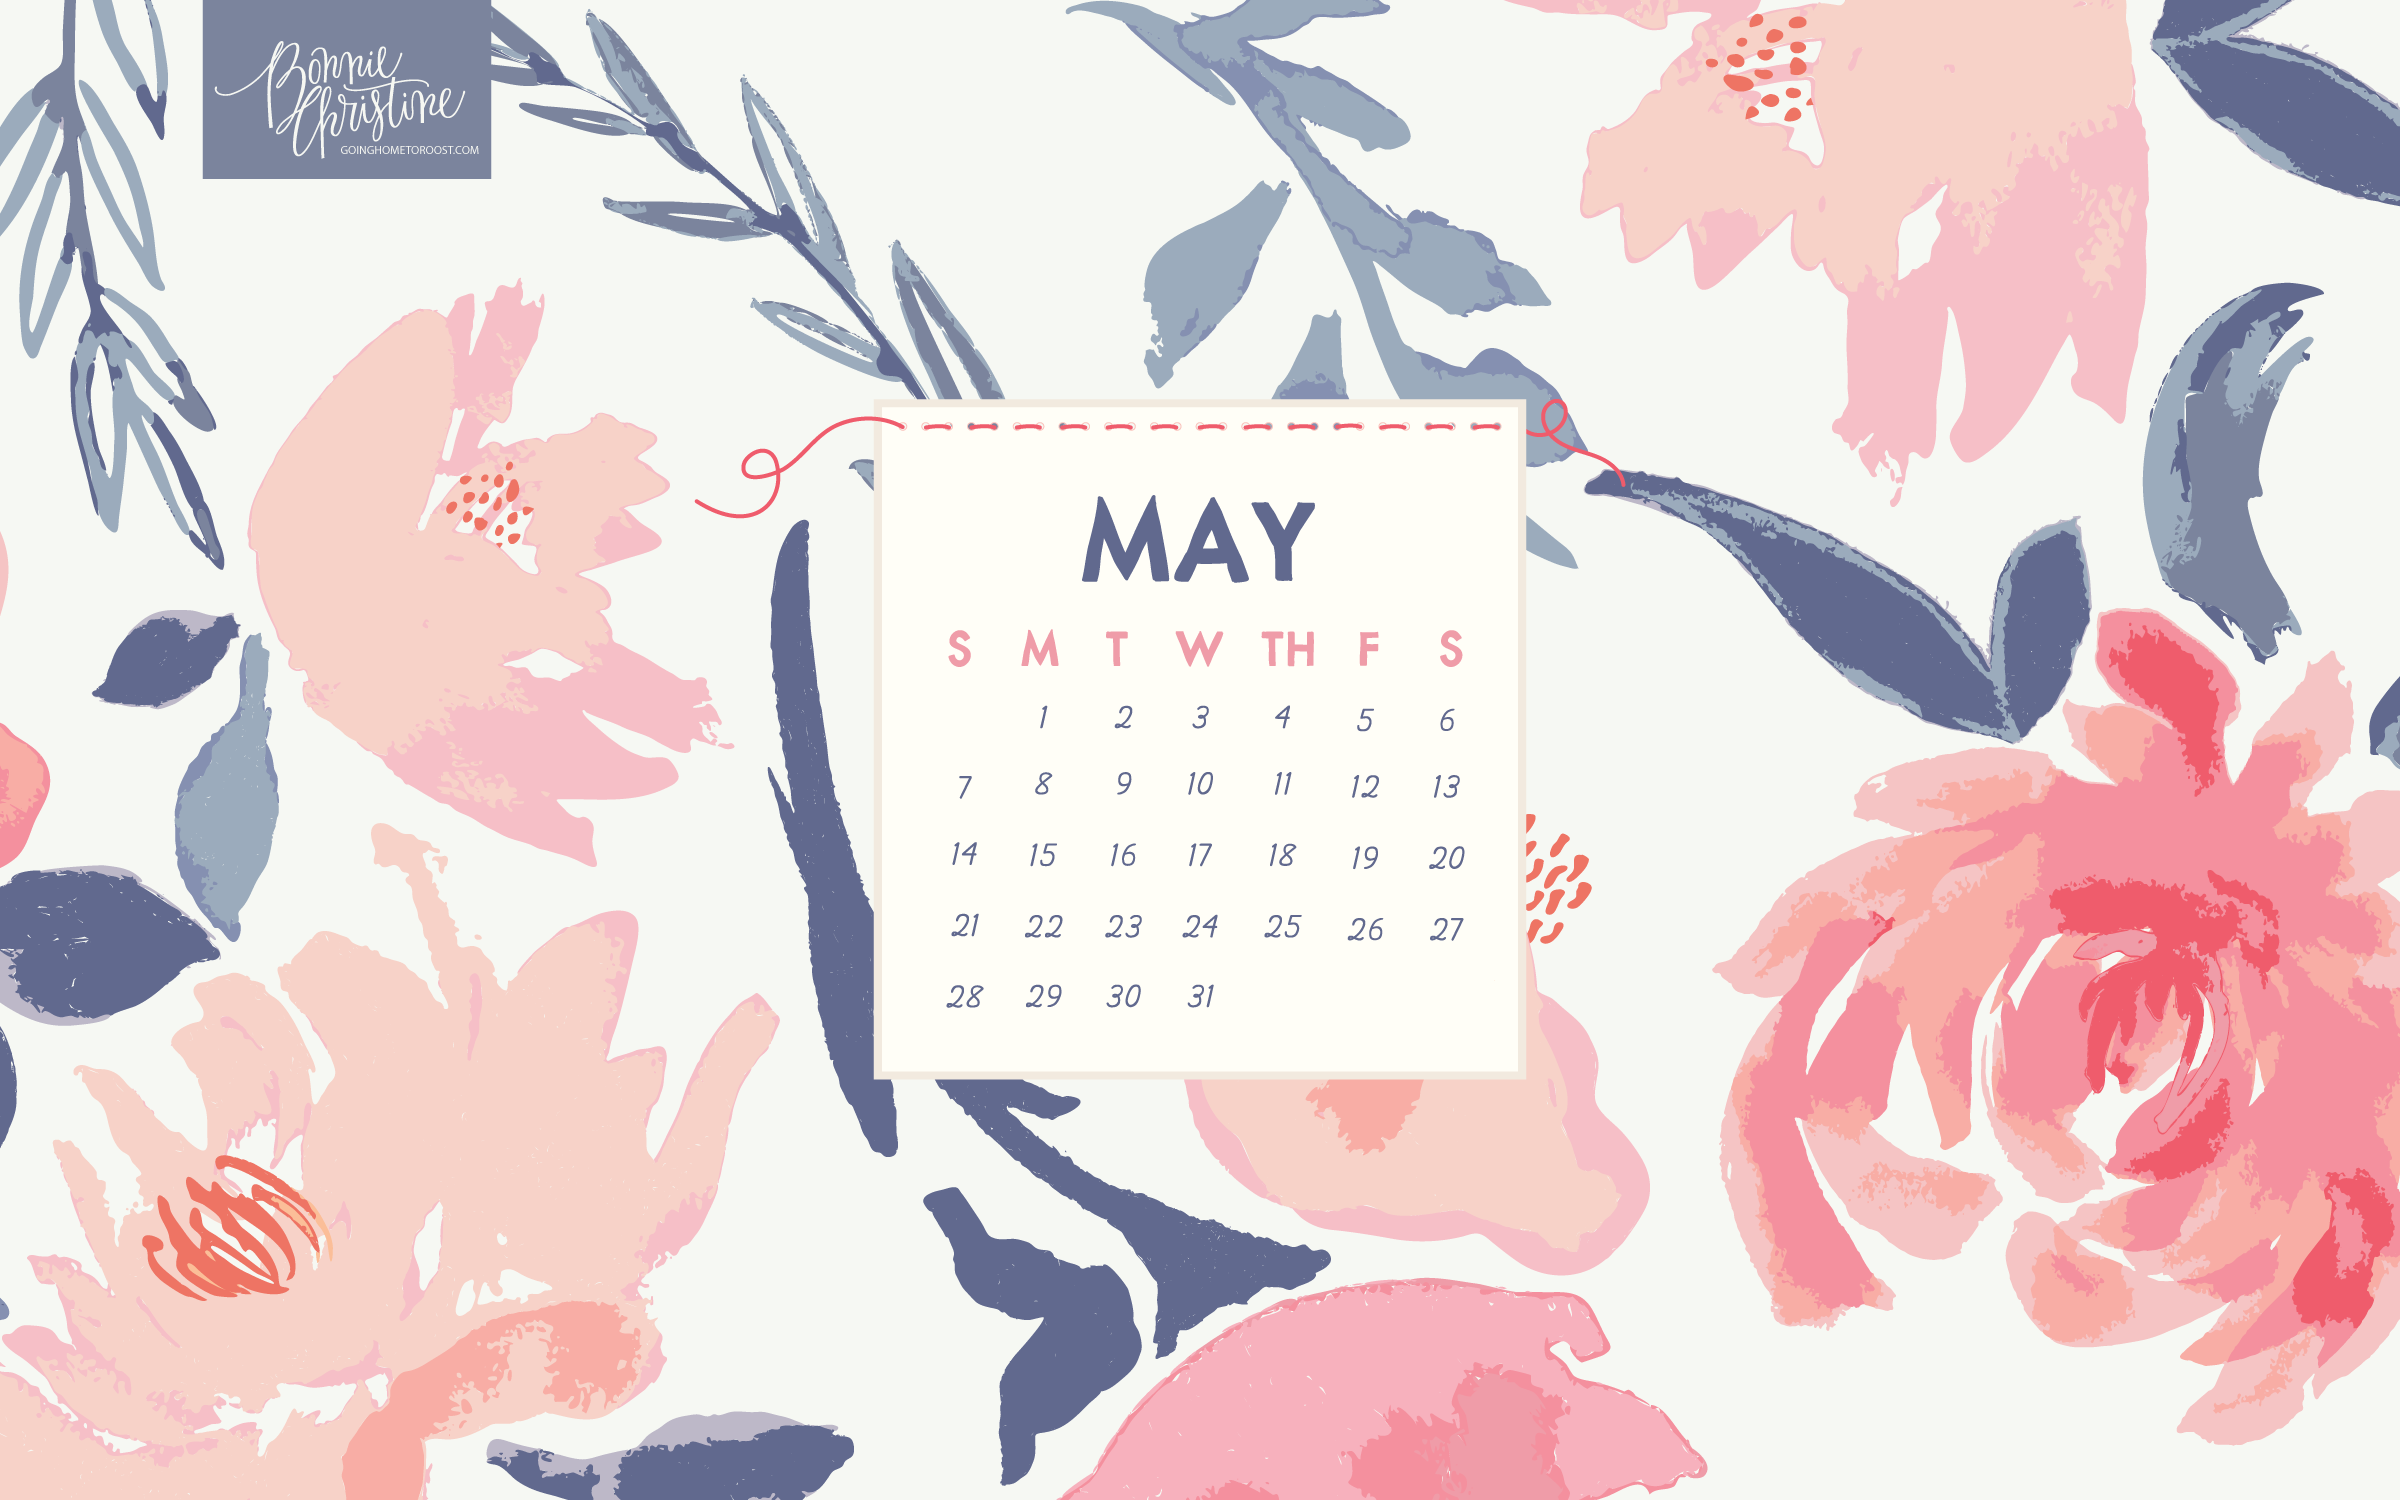 May 2019 Desktop Calendar Wallpaper 2400x1500